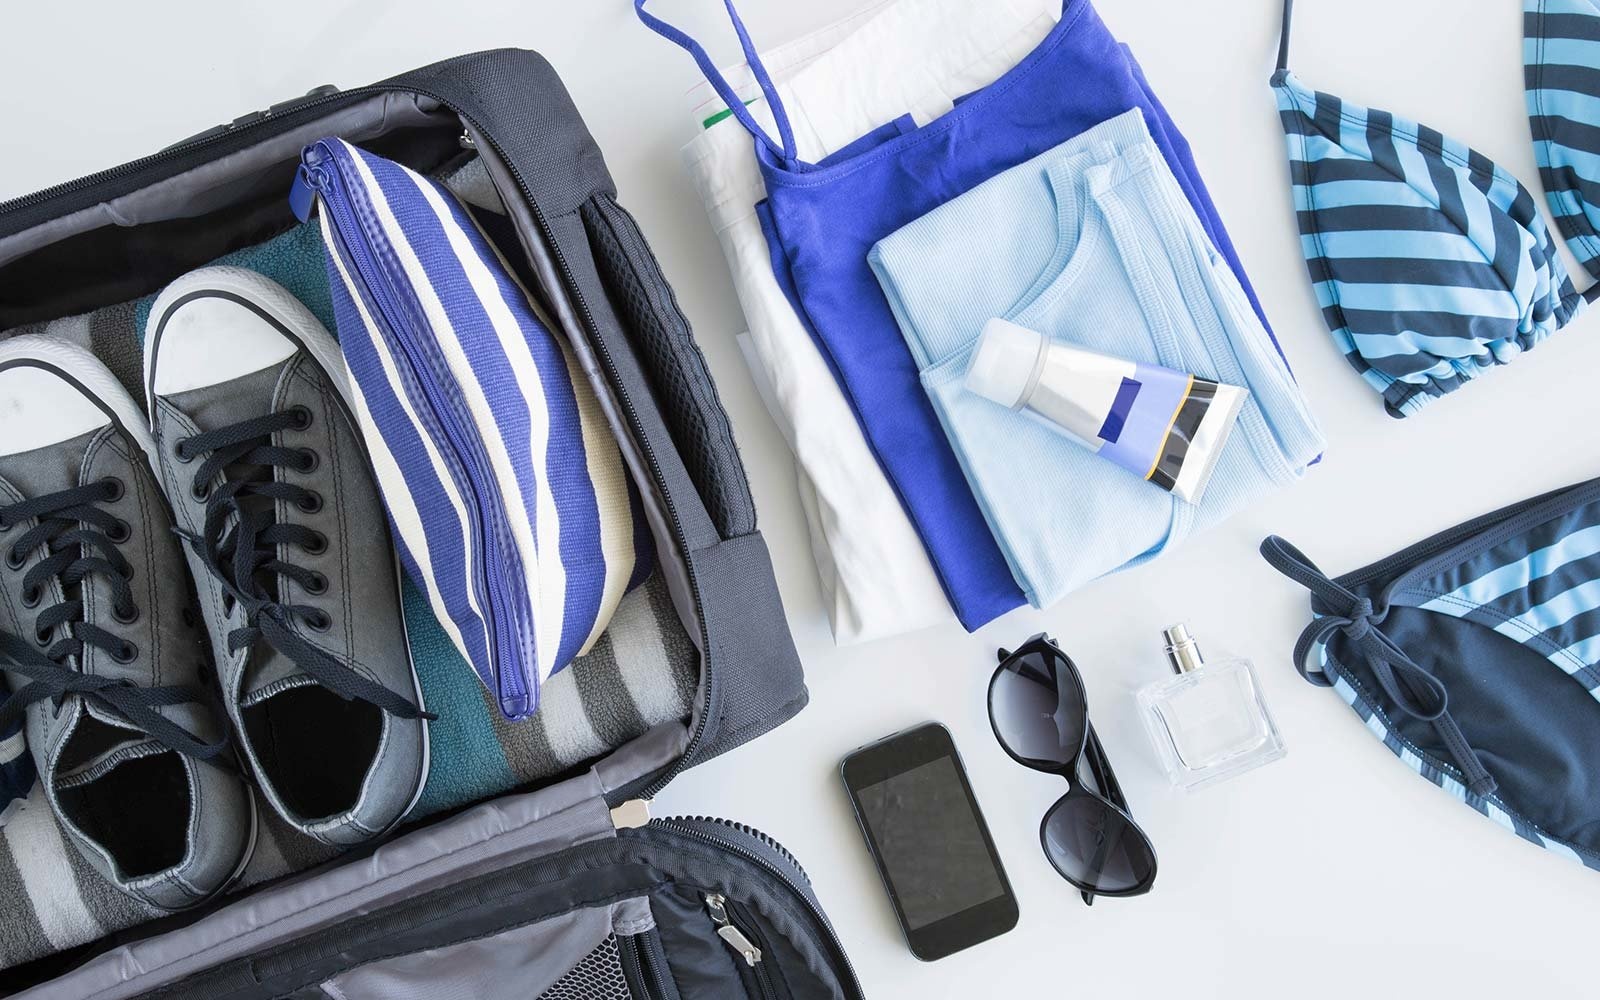 How To Pack Lighter Smarter And Faster Travel Leisure - Simple trick changes everything knew packing t shirts just brilliant